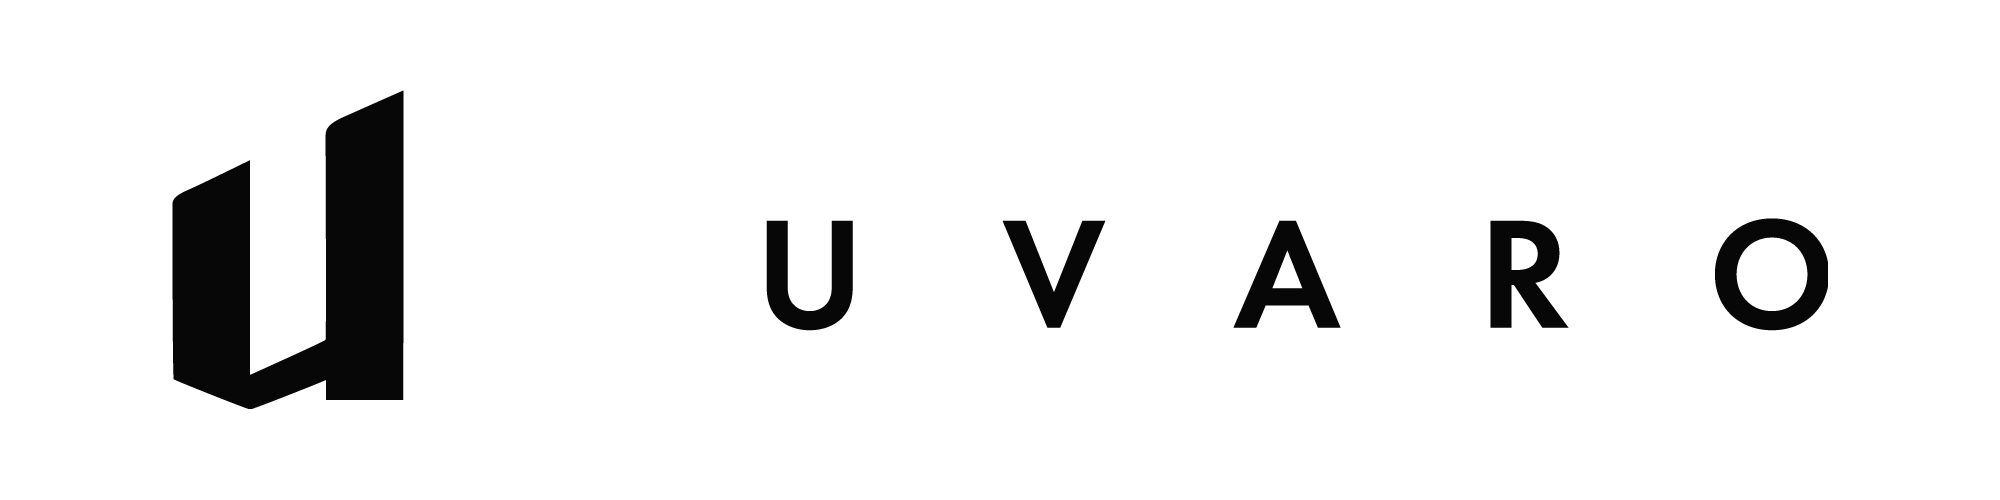 New Uvaro Sales Training Program Launches with 800 Applicants and No Upfront Tuition